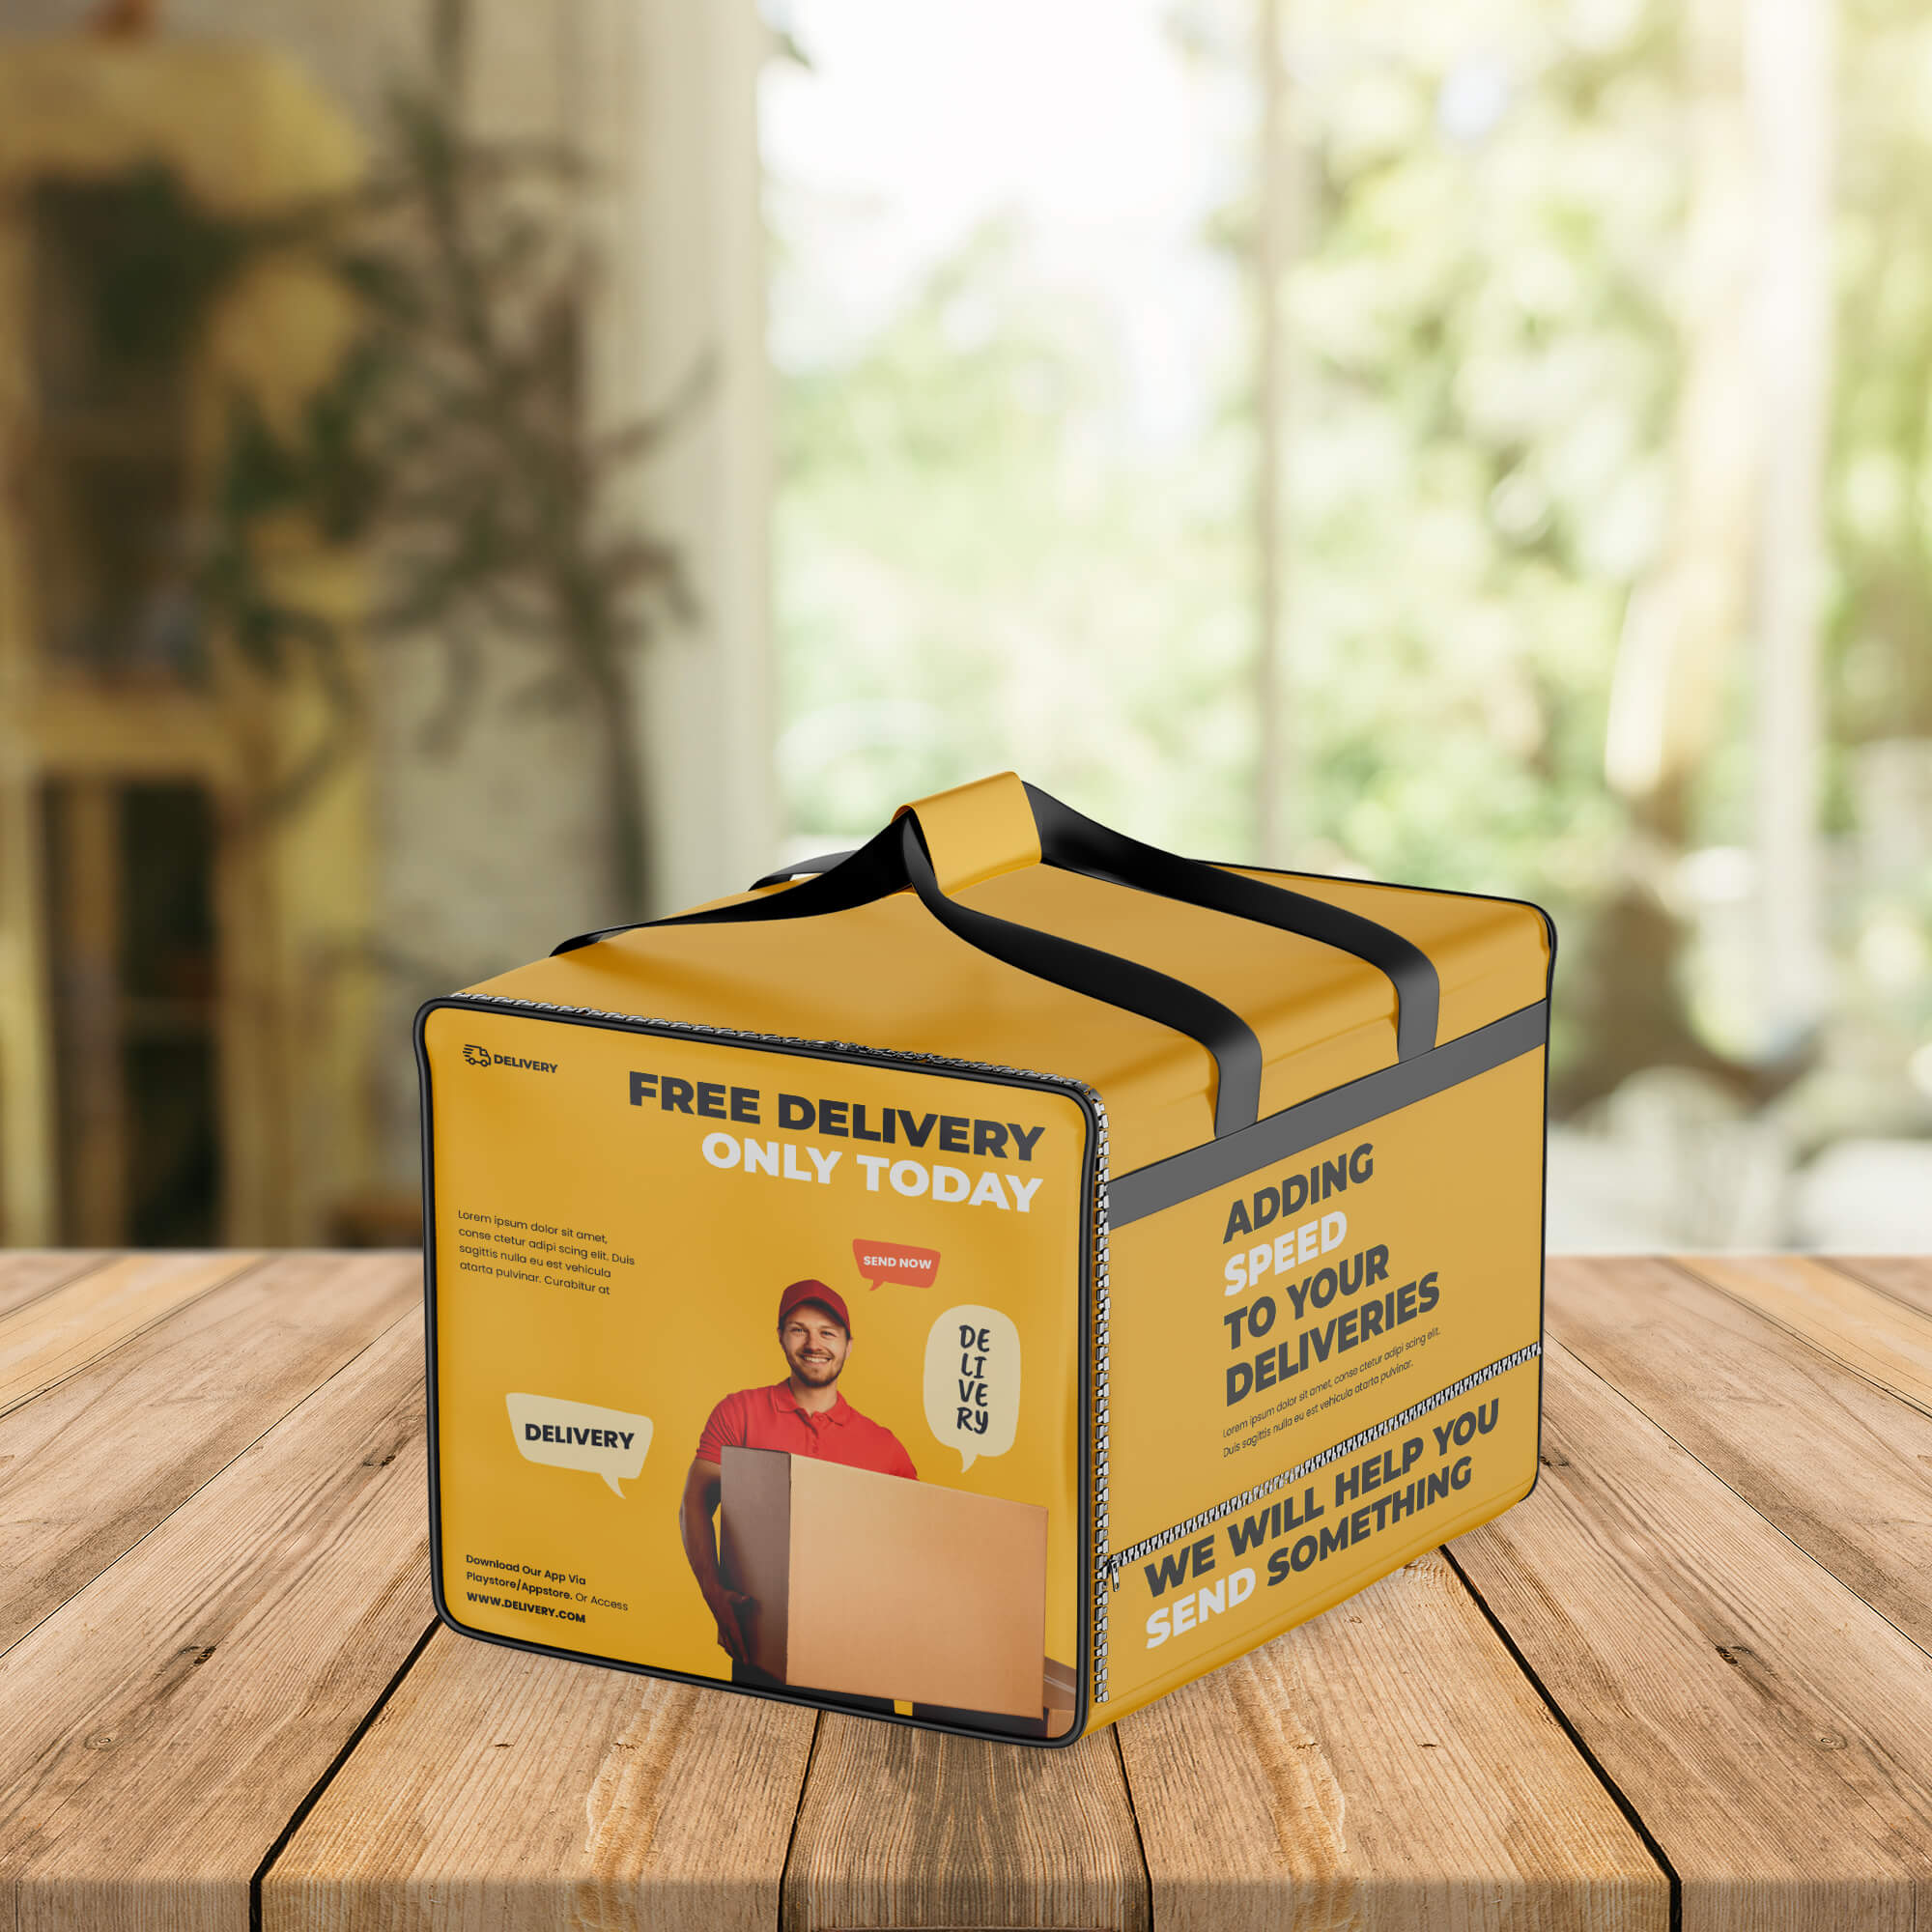 Free Food Delivery Bag Mockup PSD Template